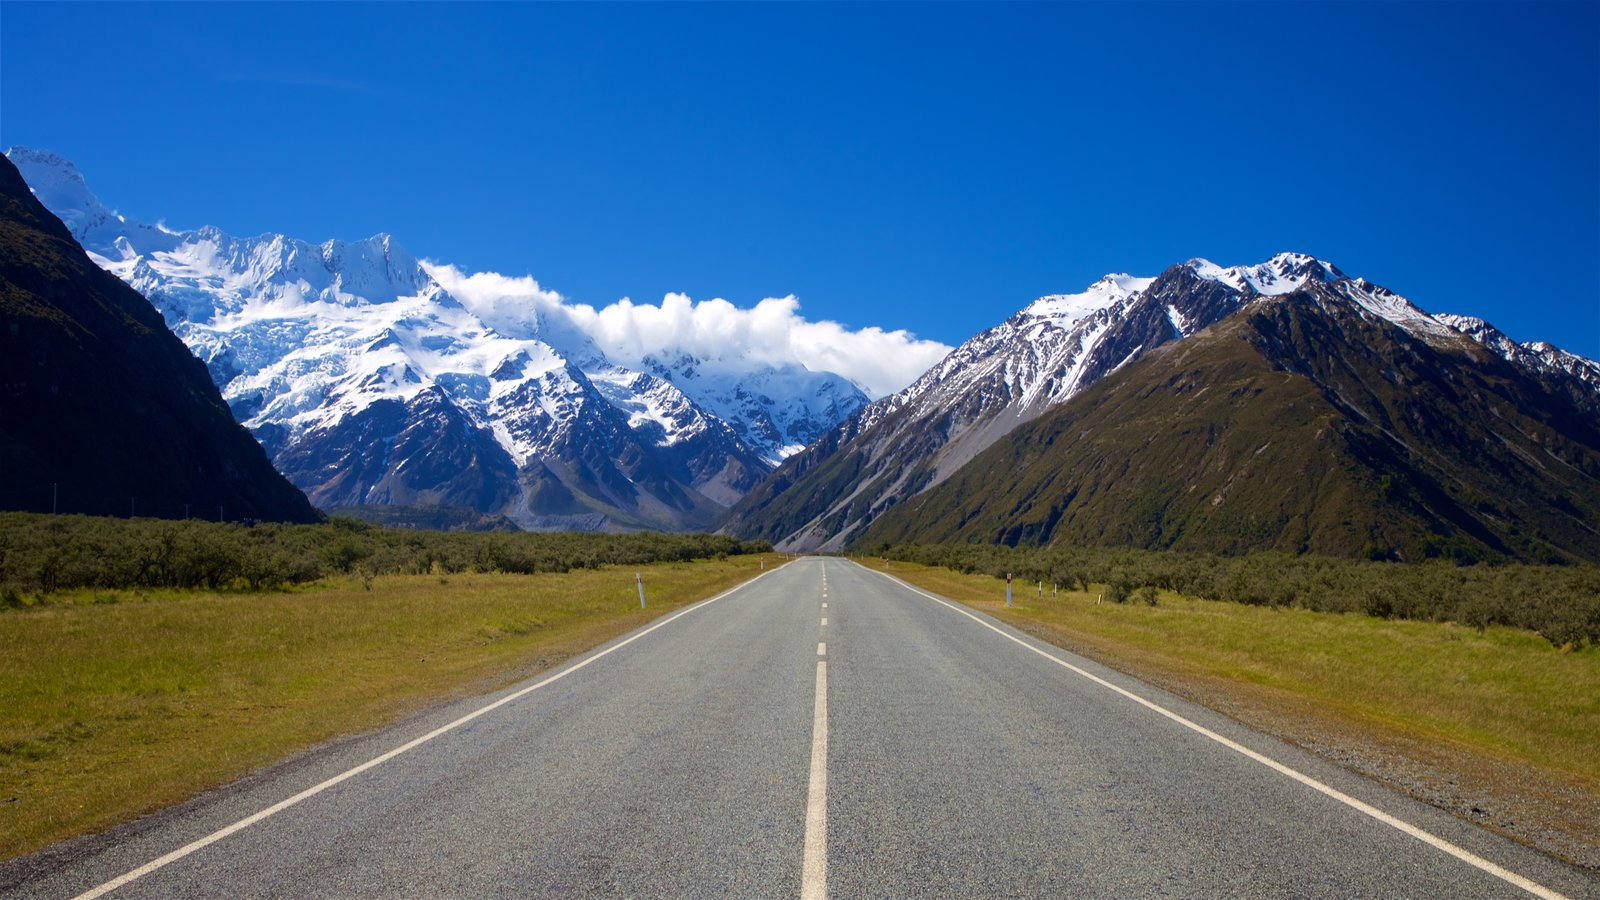 Mount Cook National Park featuring mountains, snow and tranquil scenes